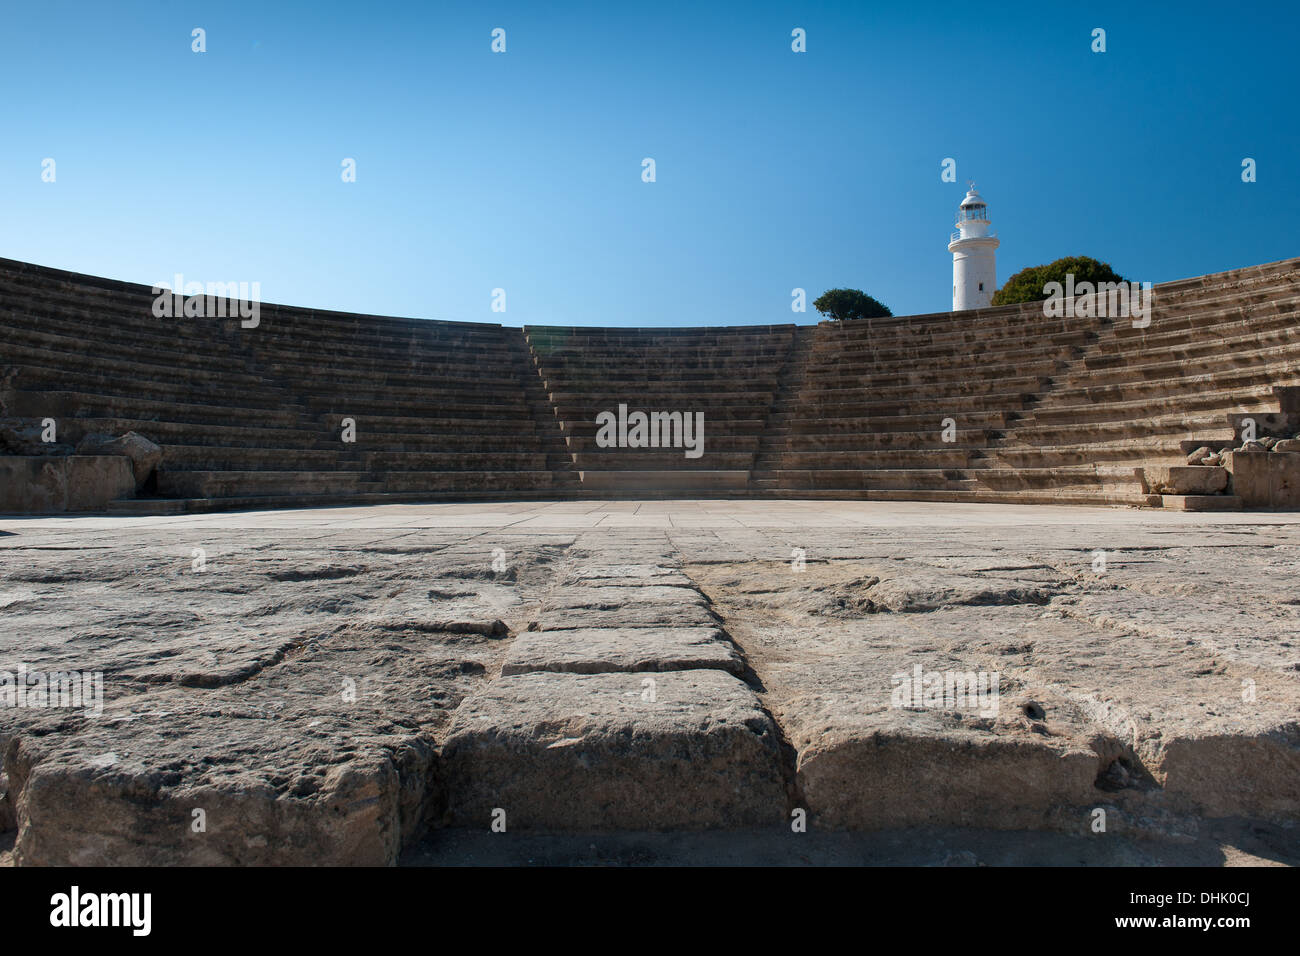 Amphitheatre in the Archaelogical site in Kato Cyprus Stock Photo